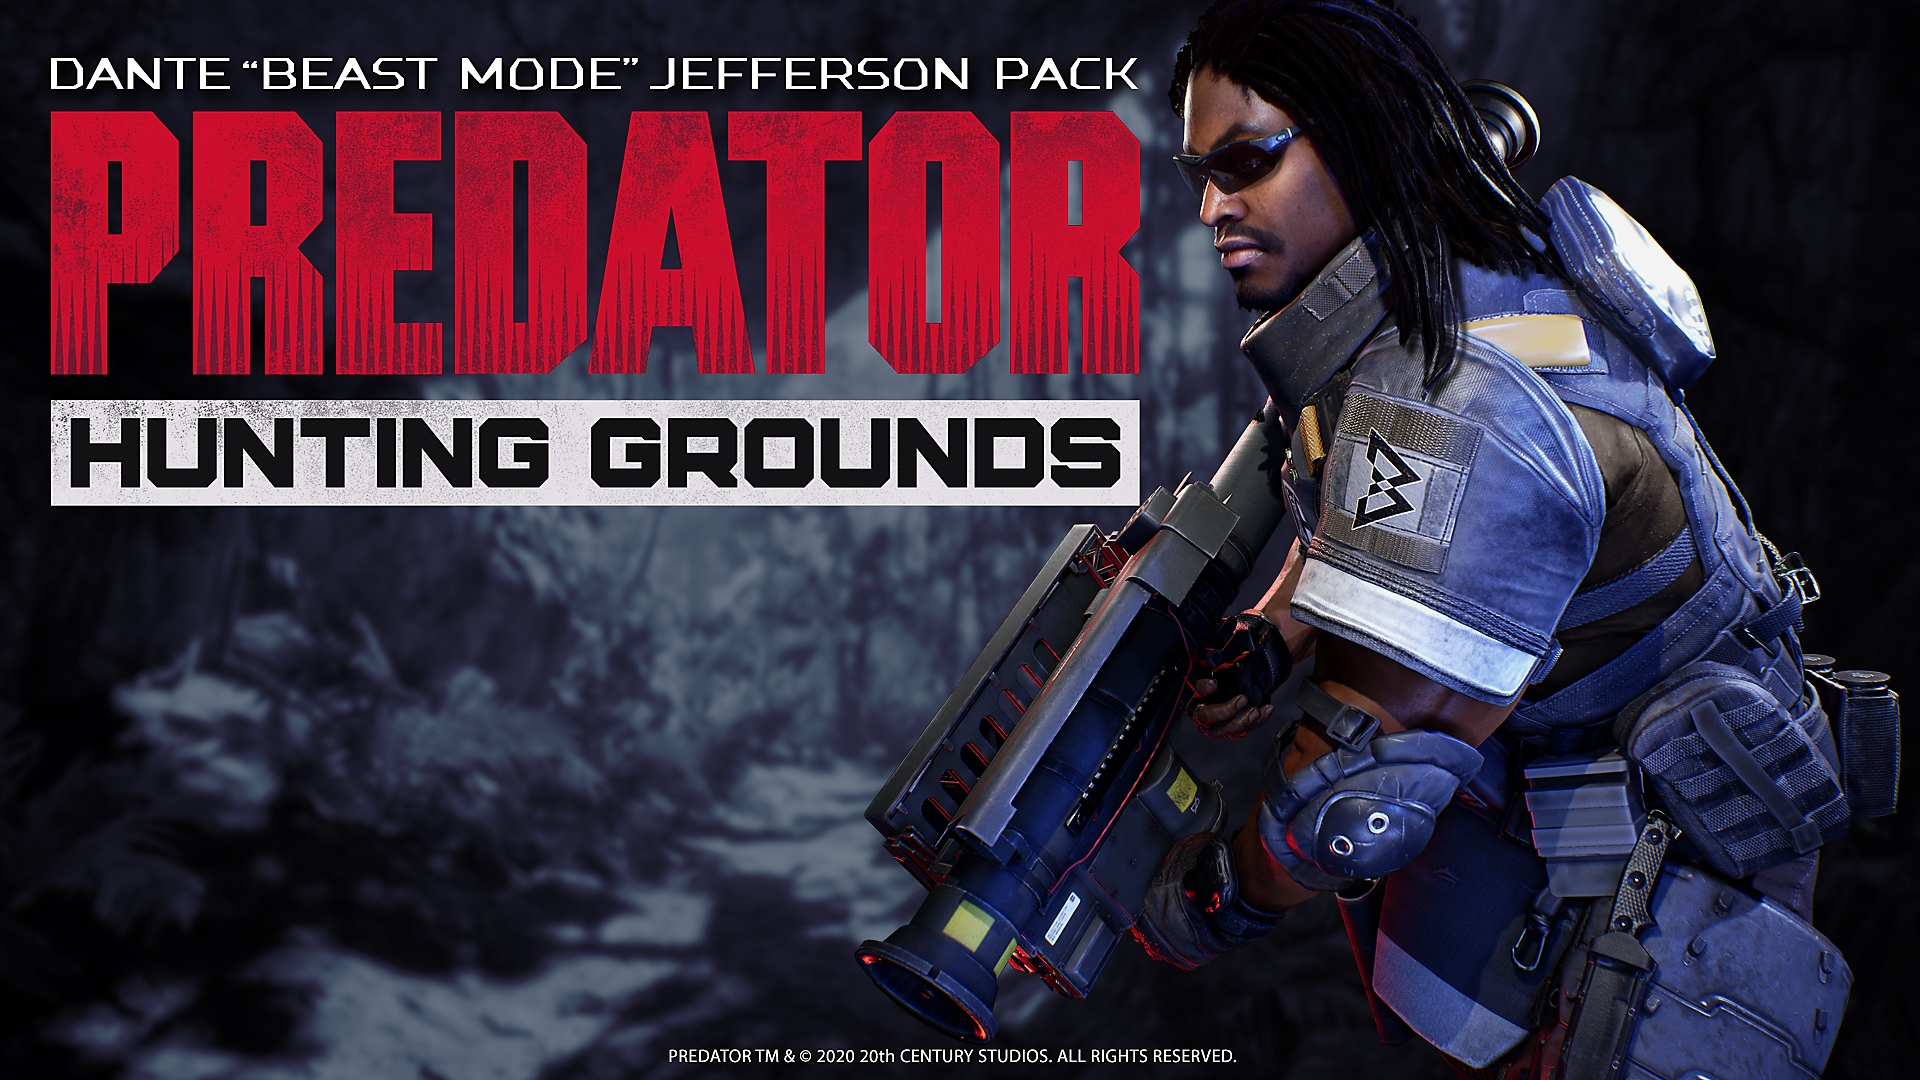 predator hunting grounds dante modo bestia jefferson pack dlc